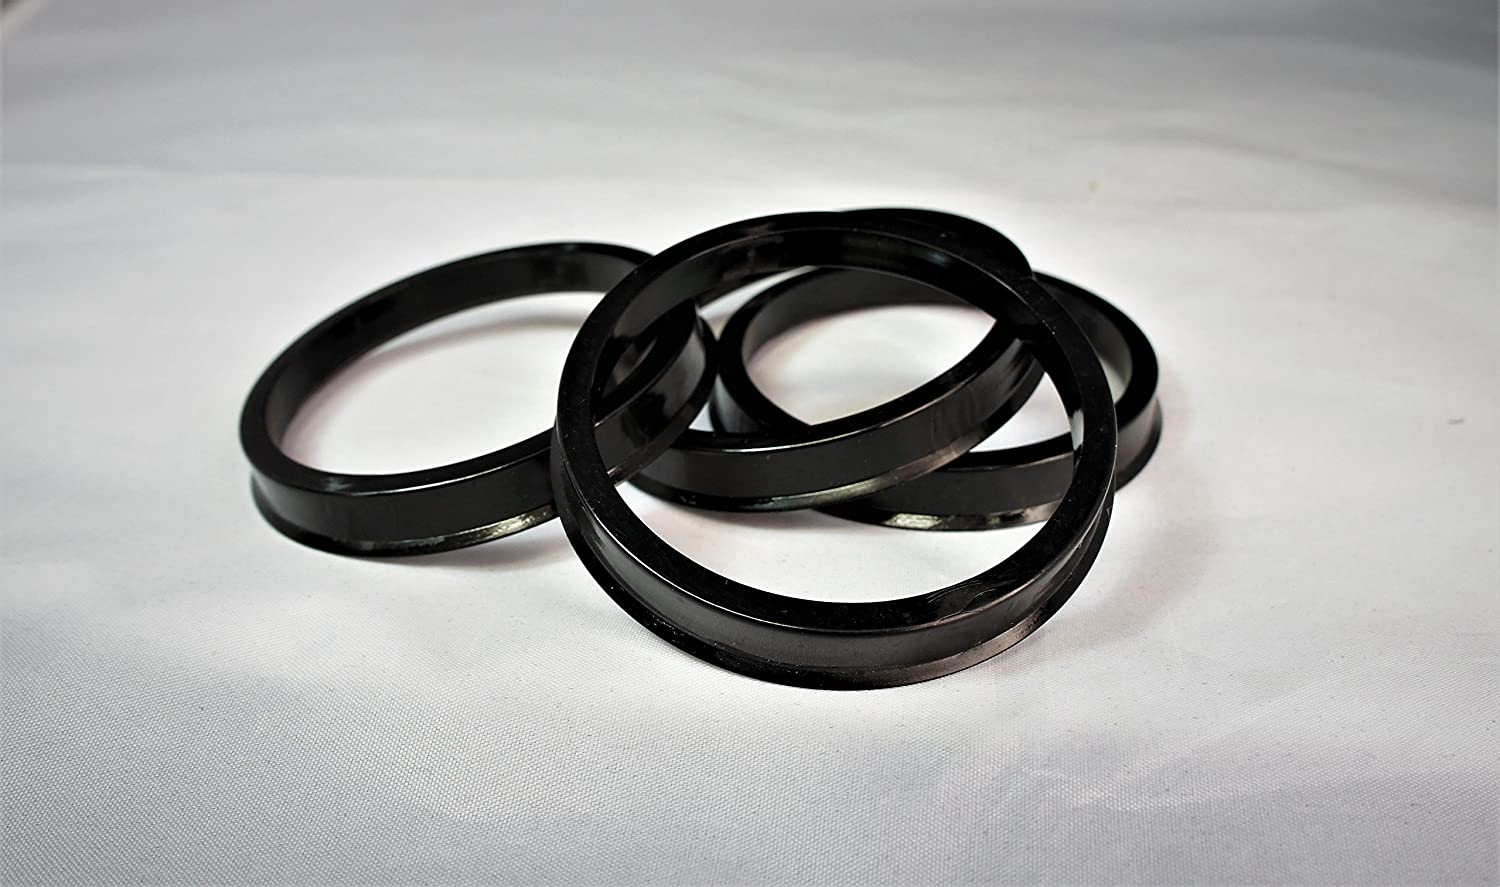 Customadeonly 4 Pieces Polycarbonate Hub Centric Rings 74.1mm Wheel Bore to 72.56mm Factory Hub